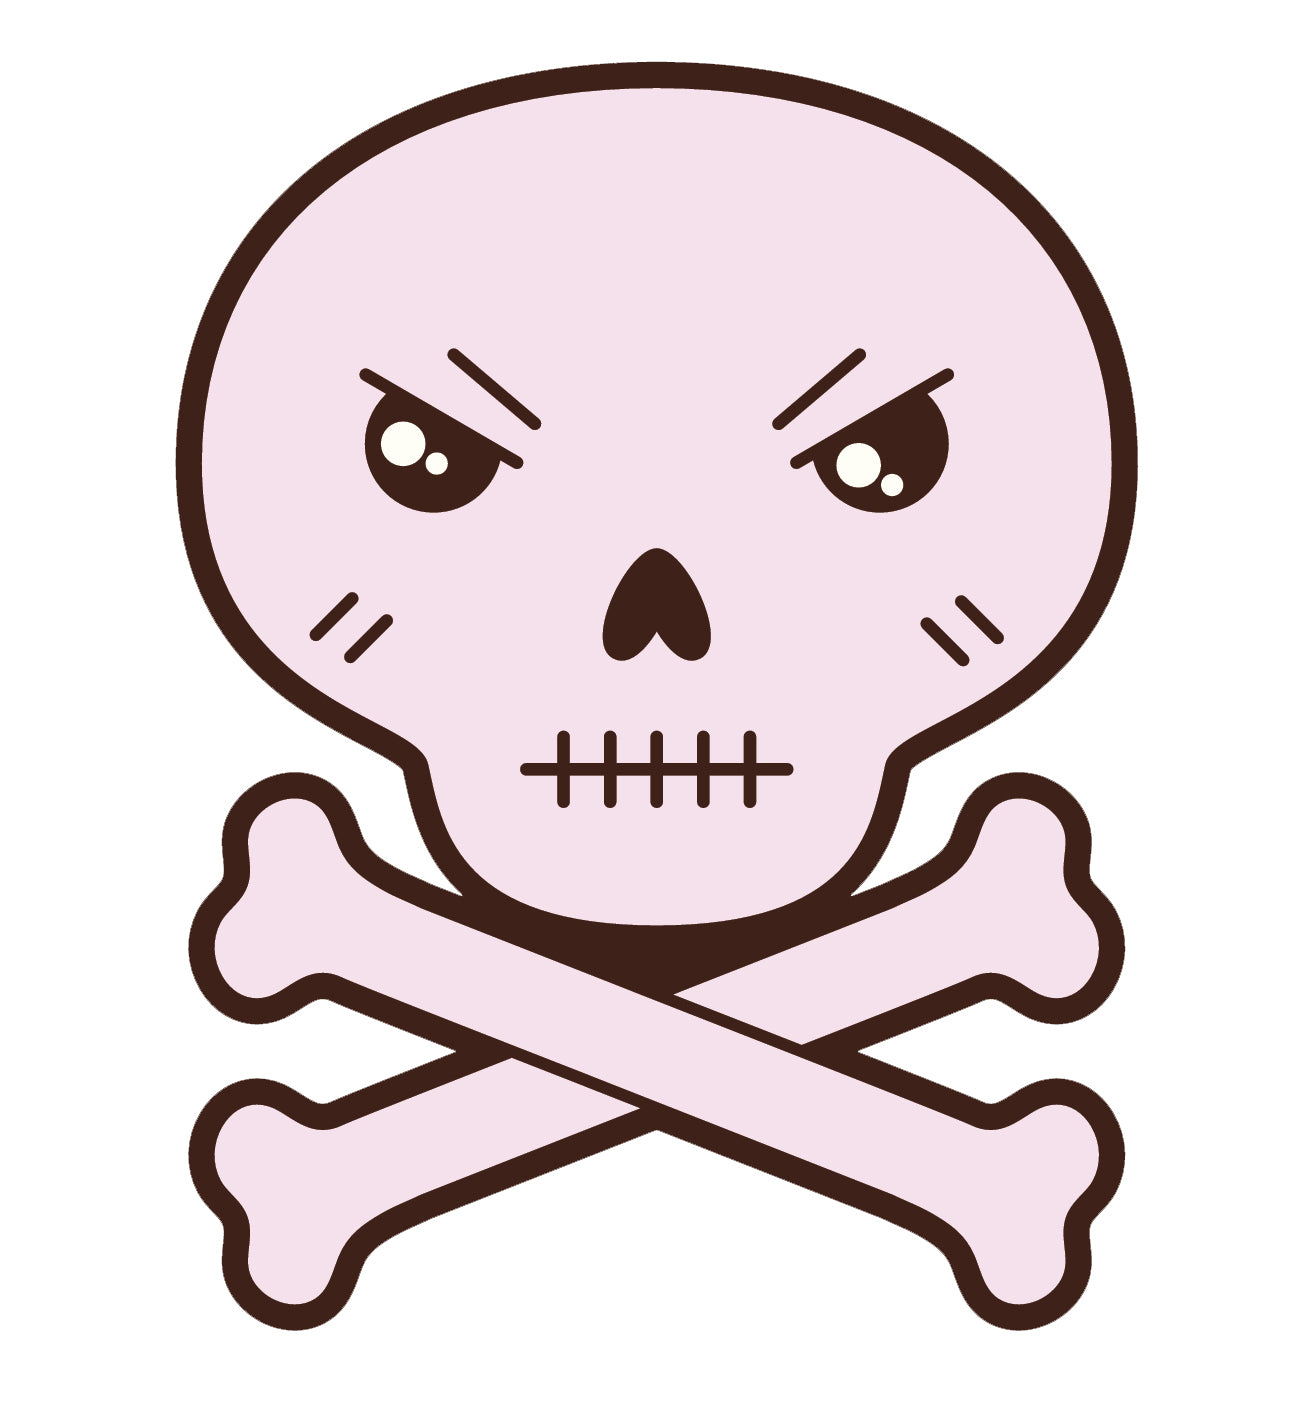 Skull and Cross Bones  Cartoon Icon - Angry Vinyl Decal Sticker